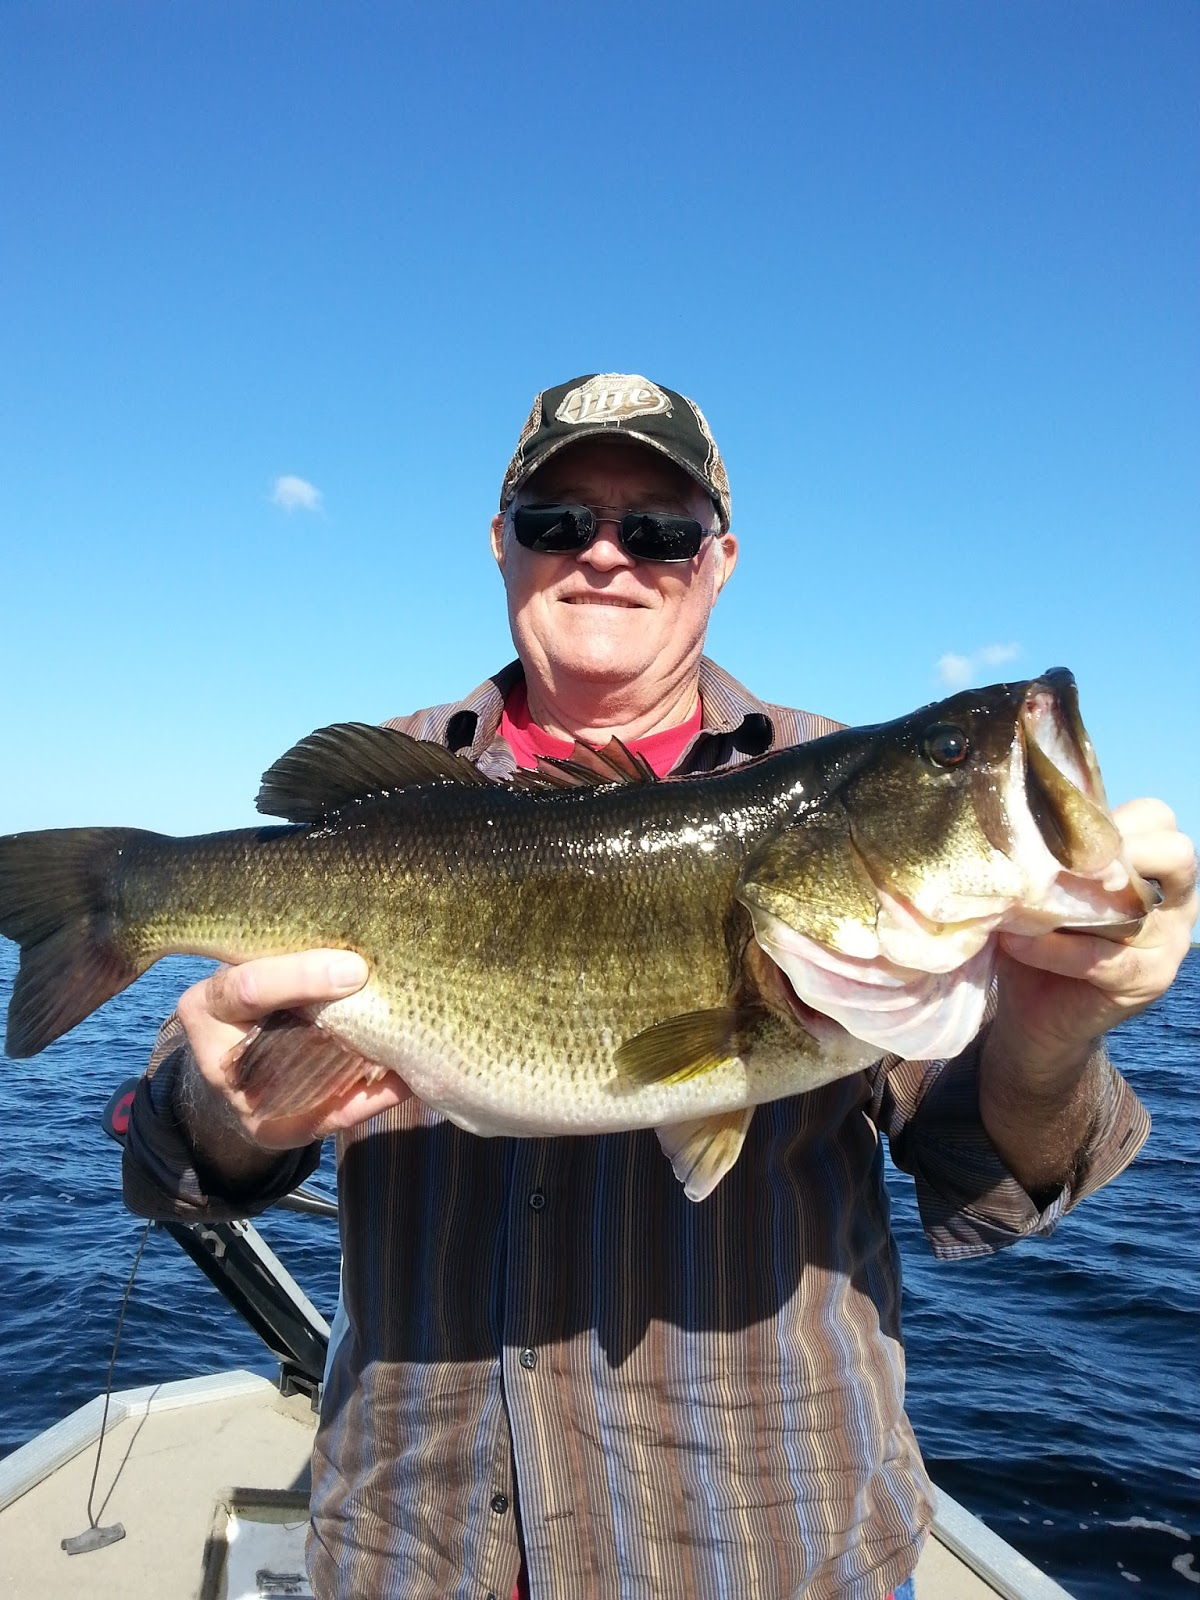 11 28 15 trophy bass lake okeechobee lake okeechobee for Lake okeechobee fishing guides